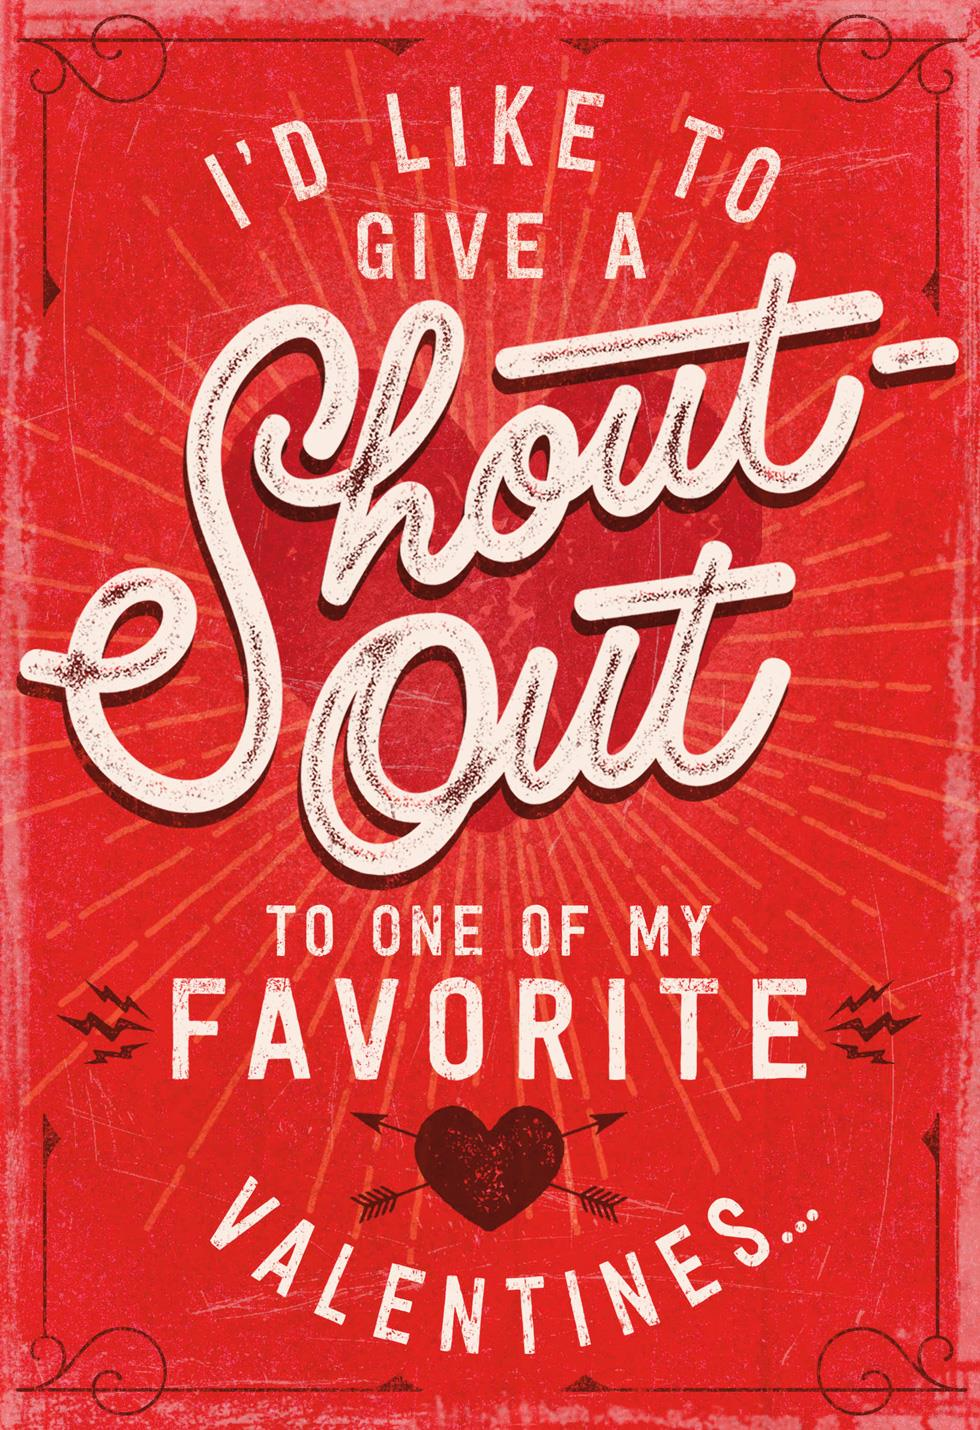 Shout Out Recordable Valentines Day Card Greeting Cards Hallmark